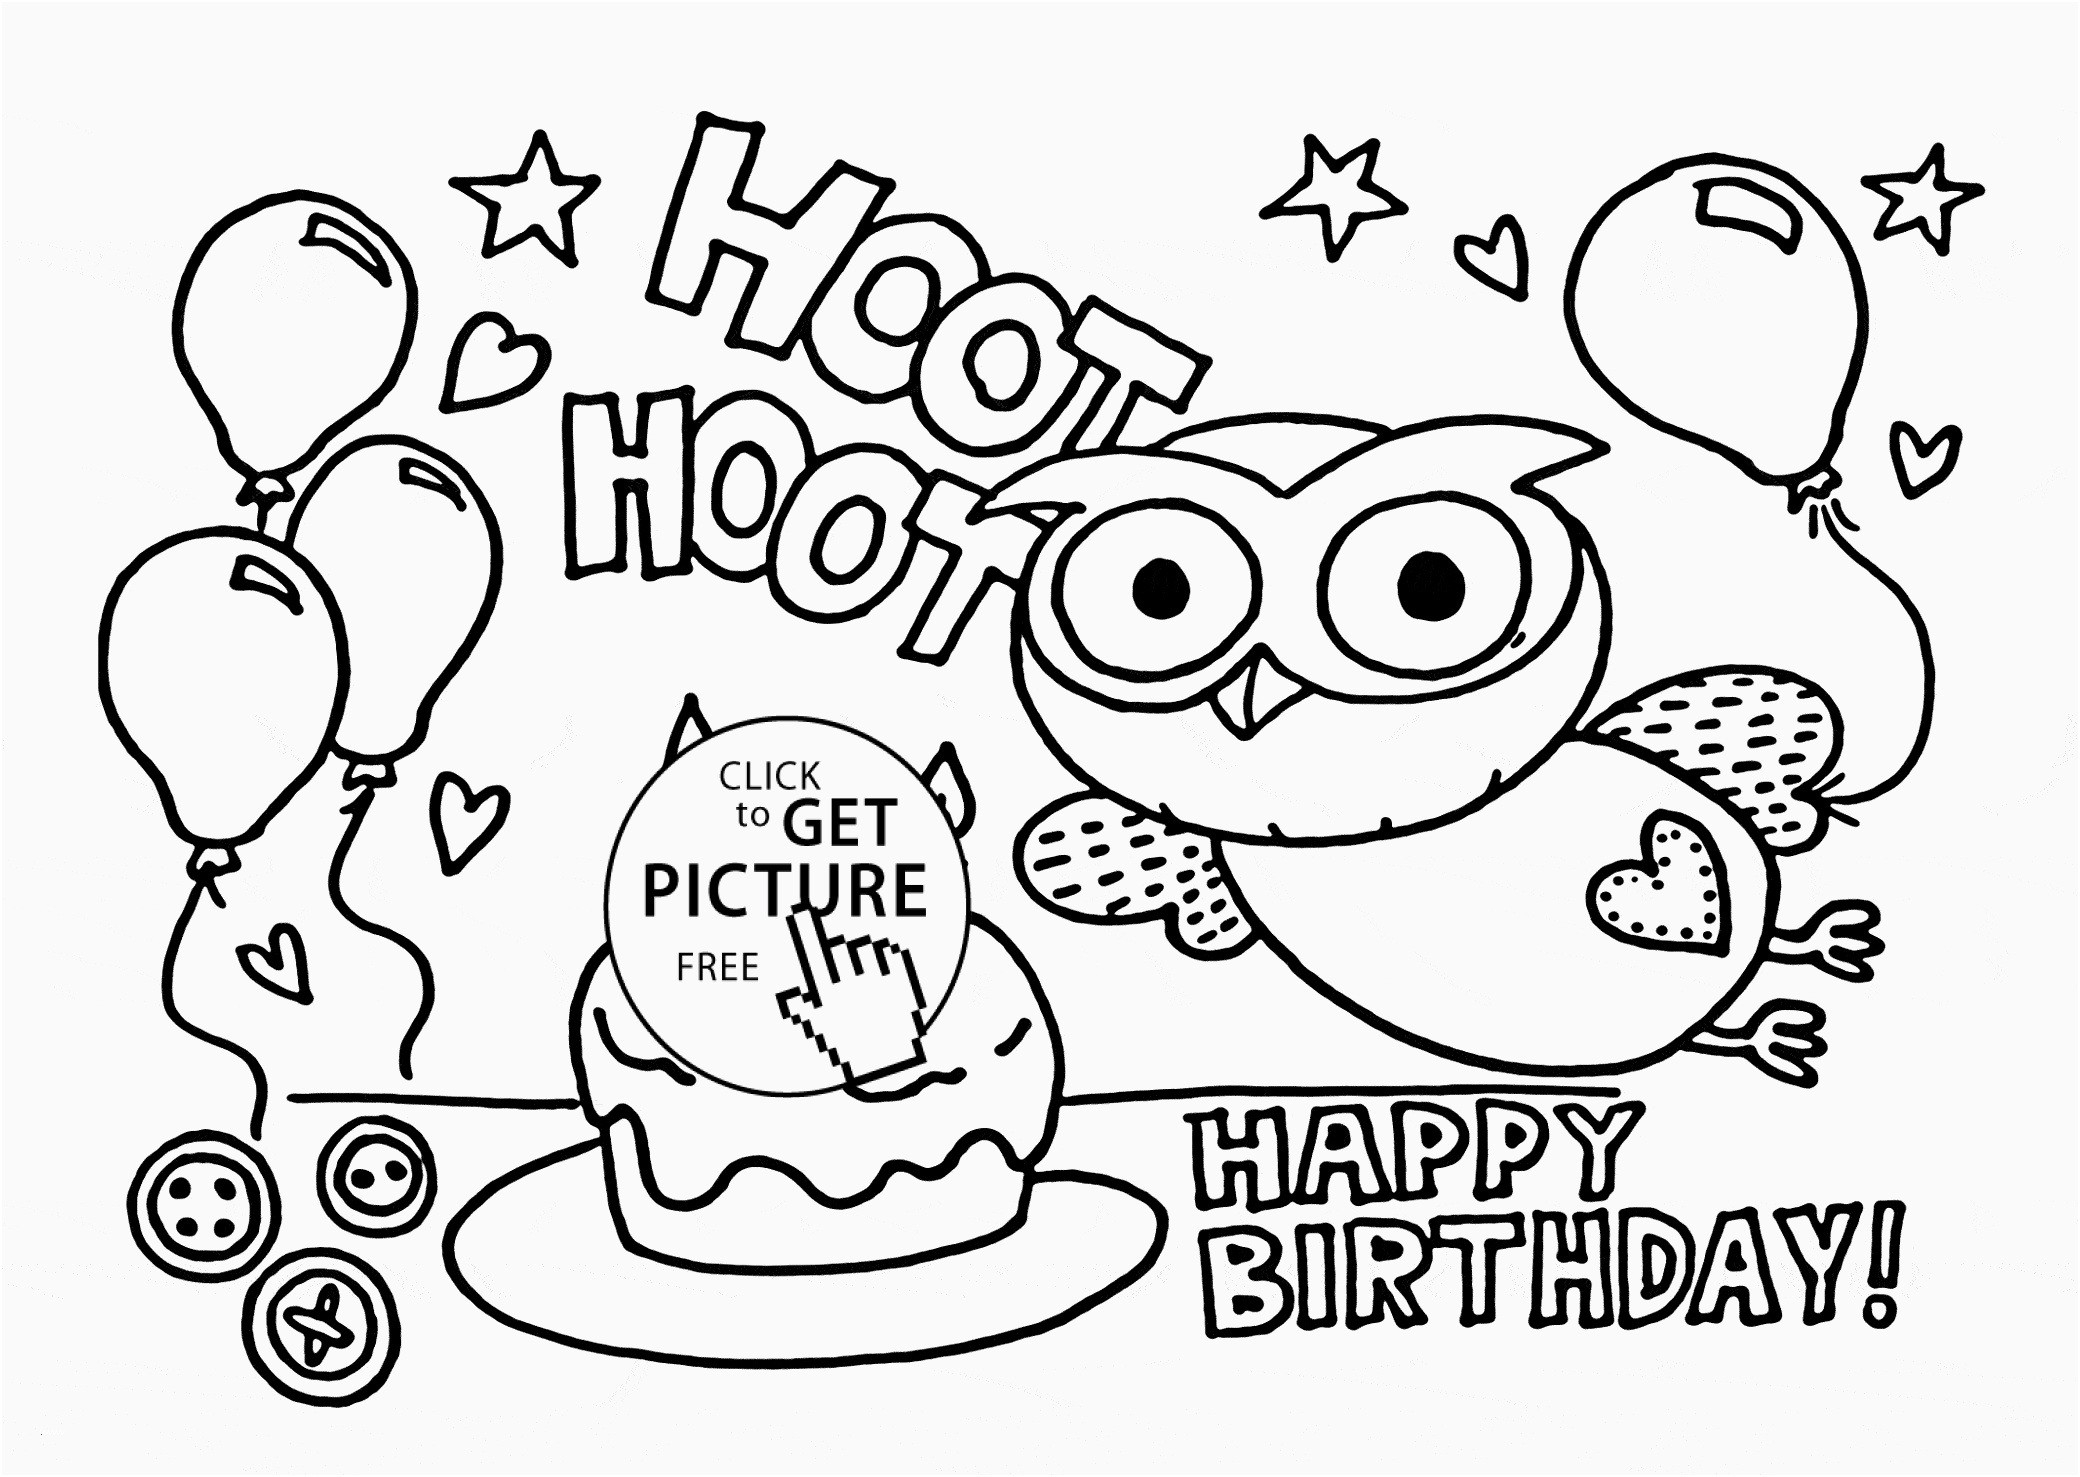 Happy Birthday Card Coloring Pages  Download 19a - Free For kids